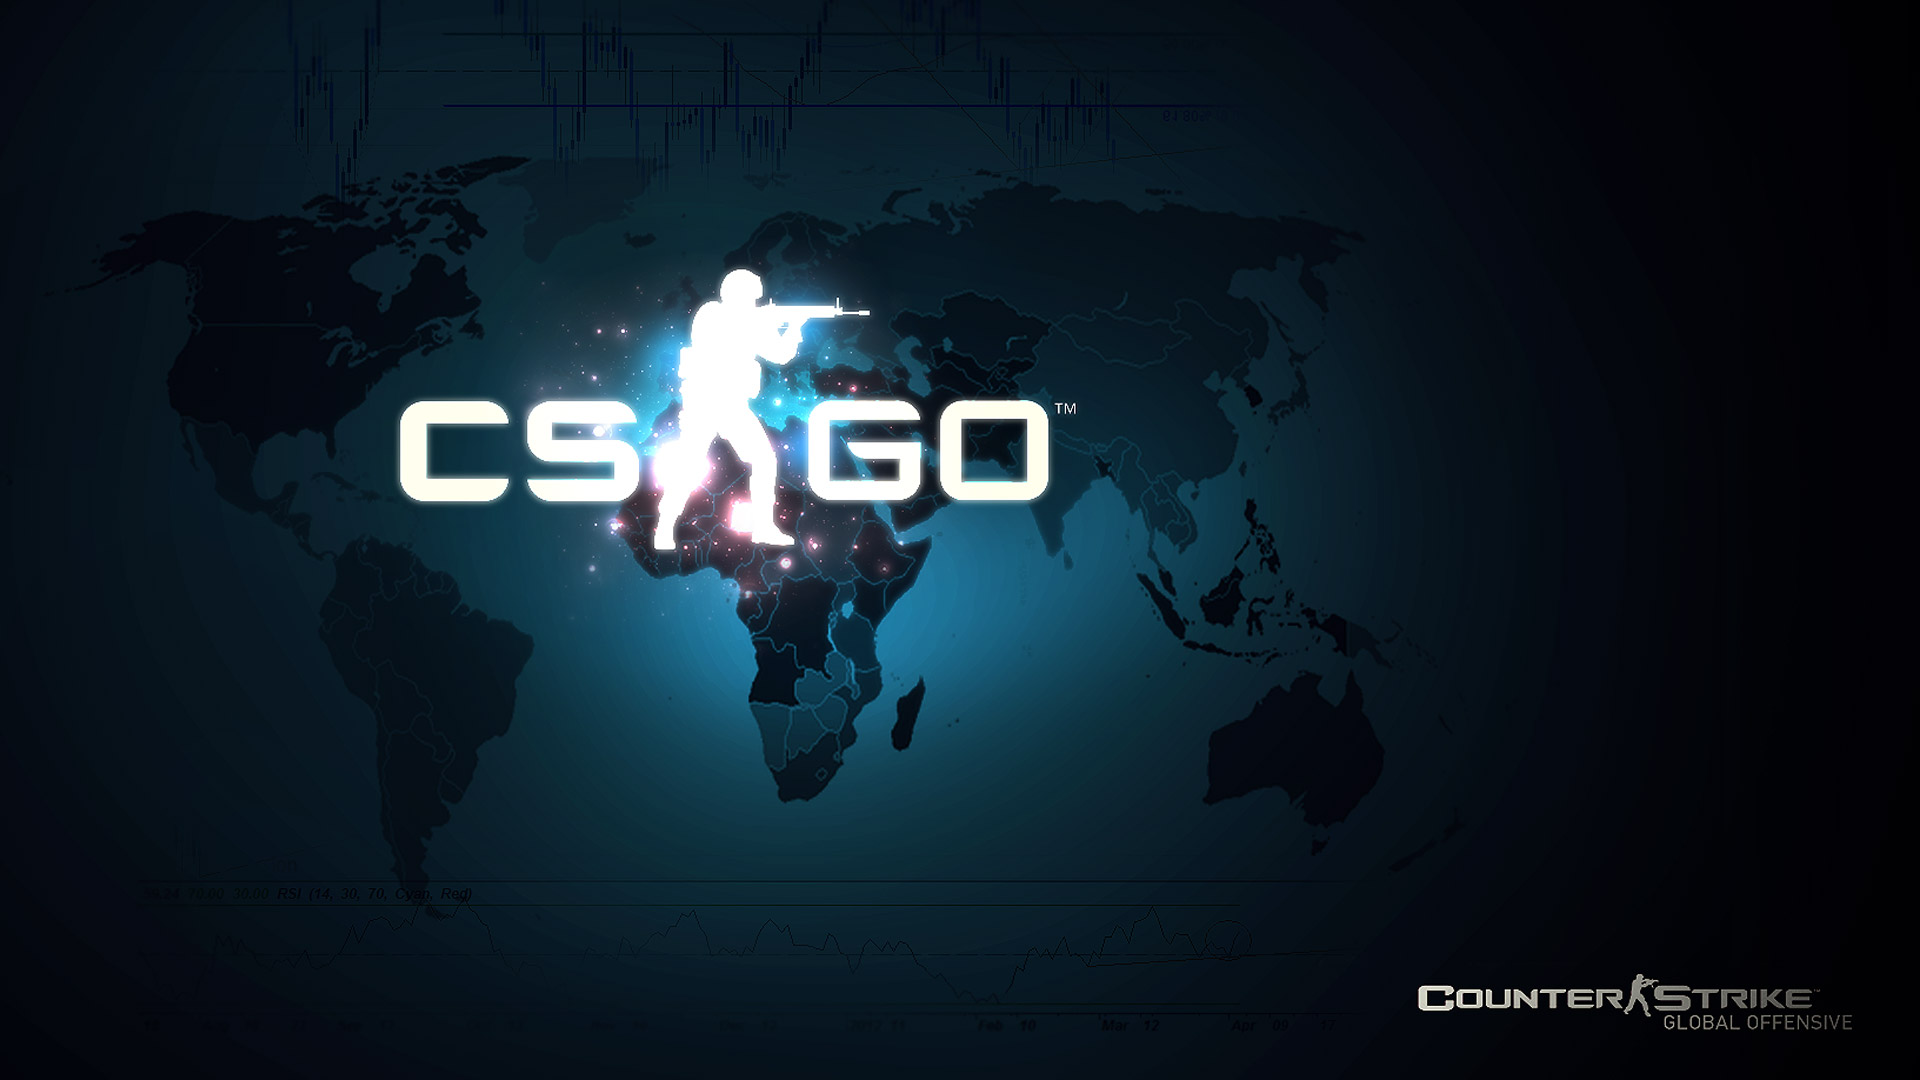 Counter Strike Global Offensive Wallpaper in 1920x1080 1920x1080